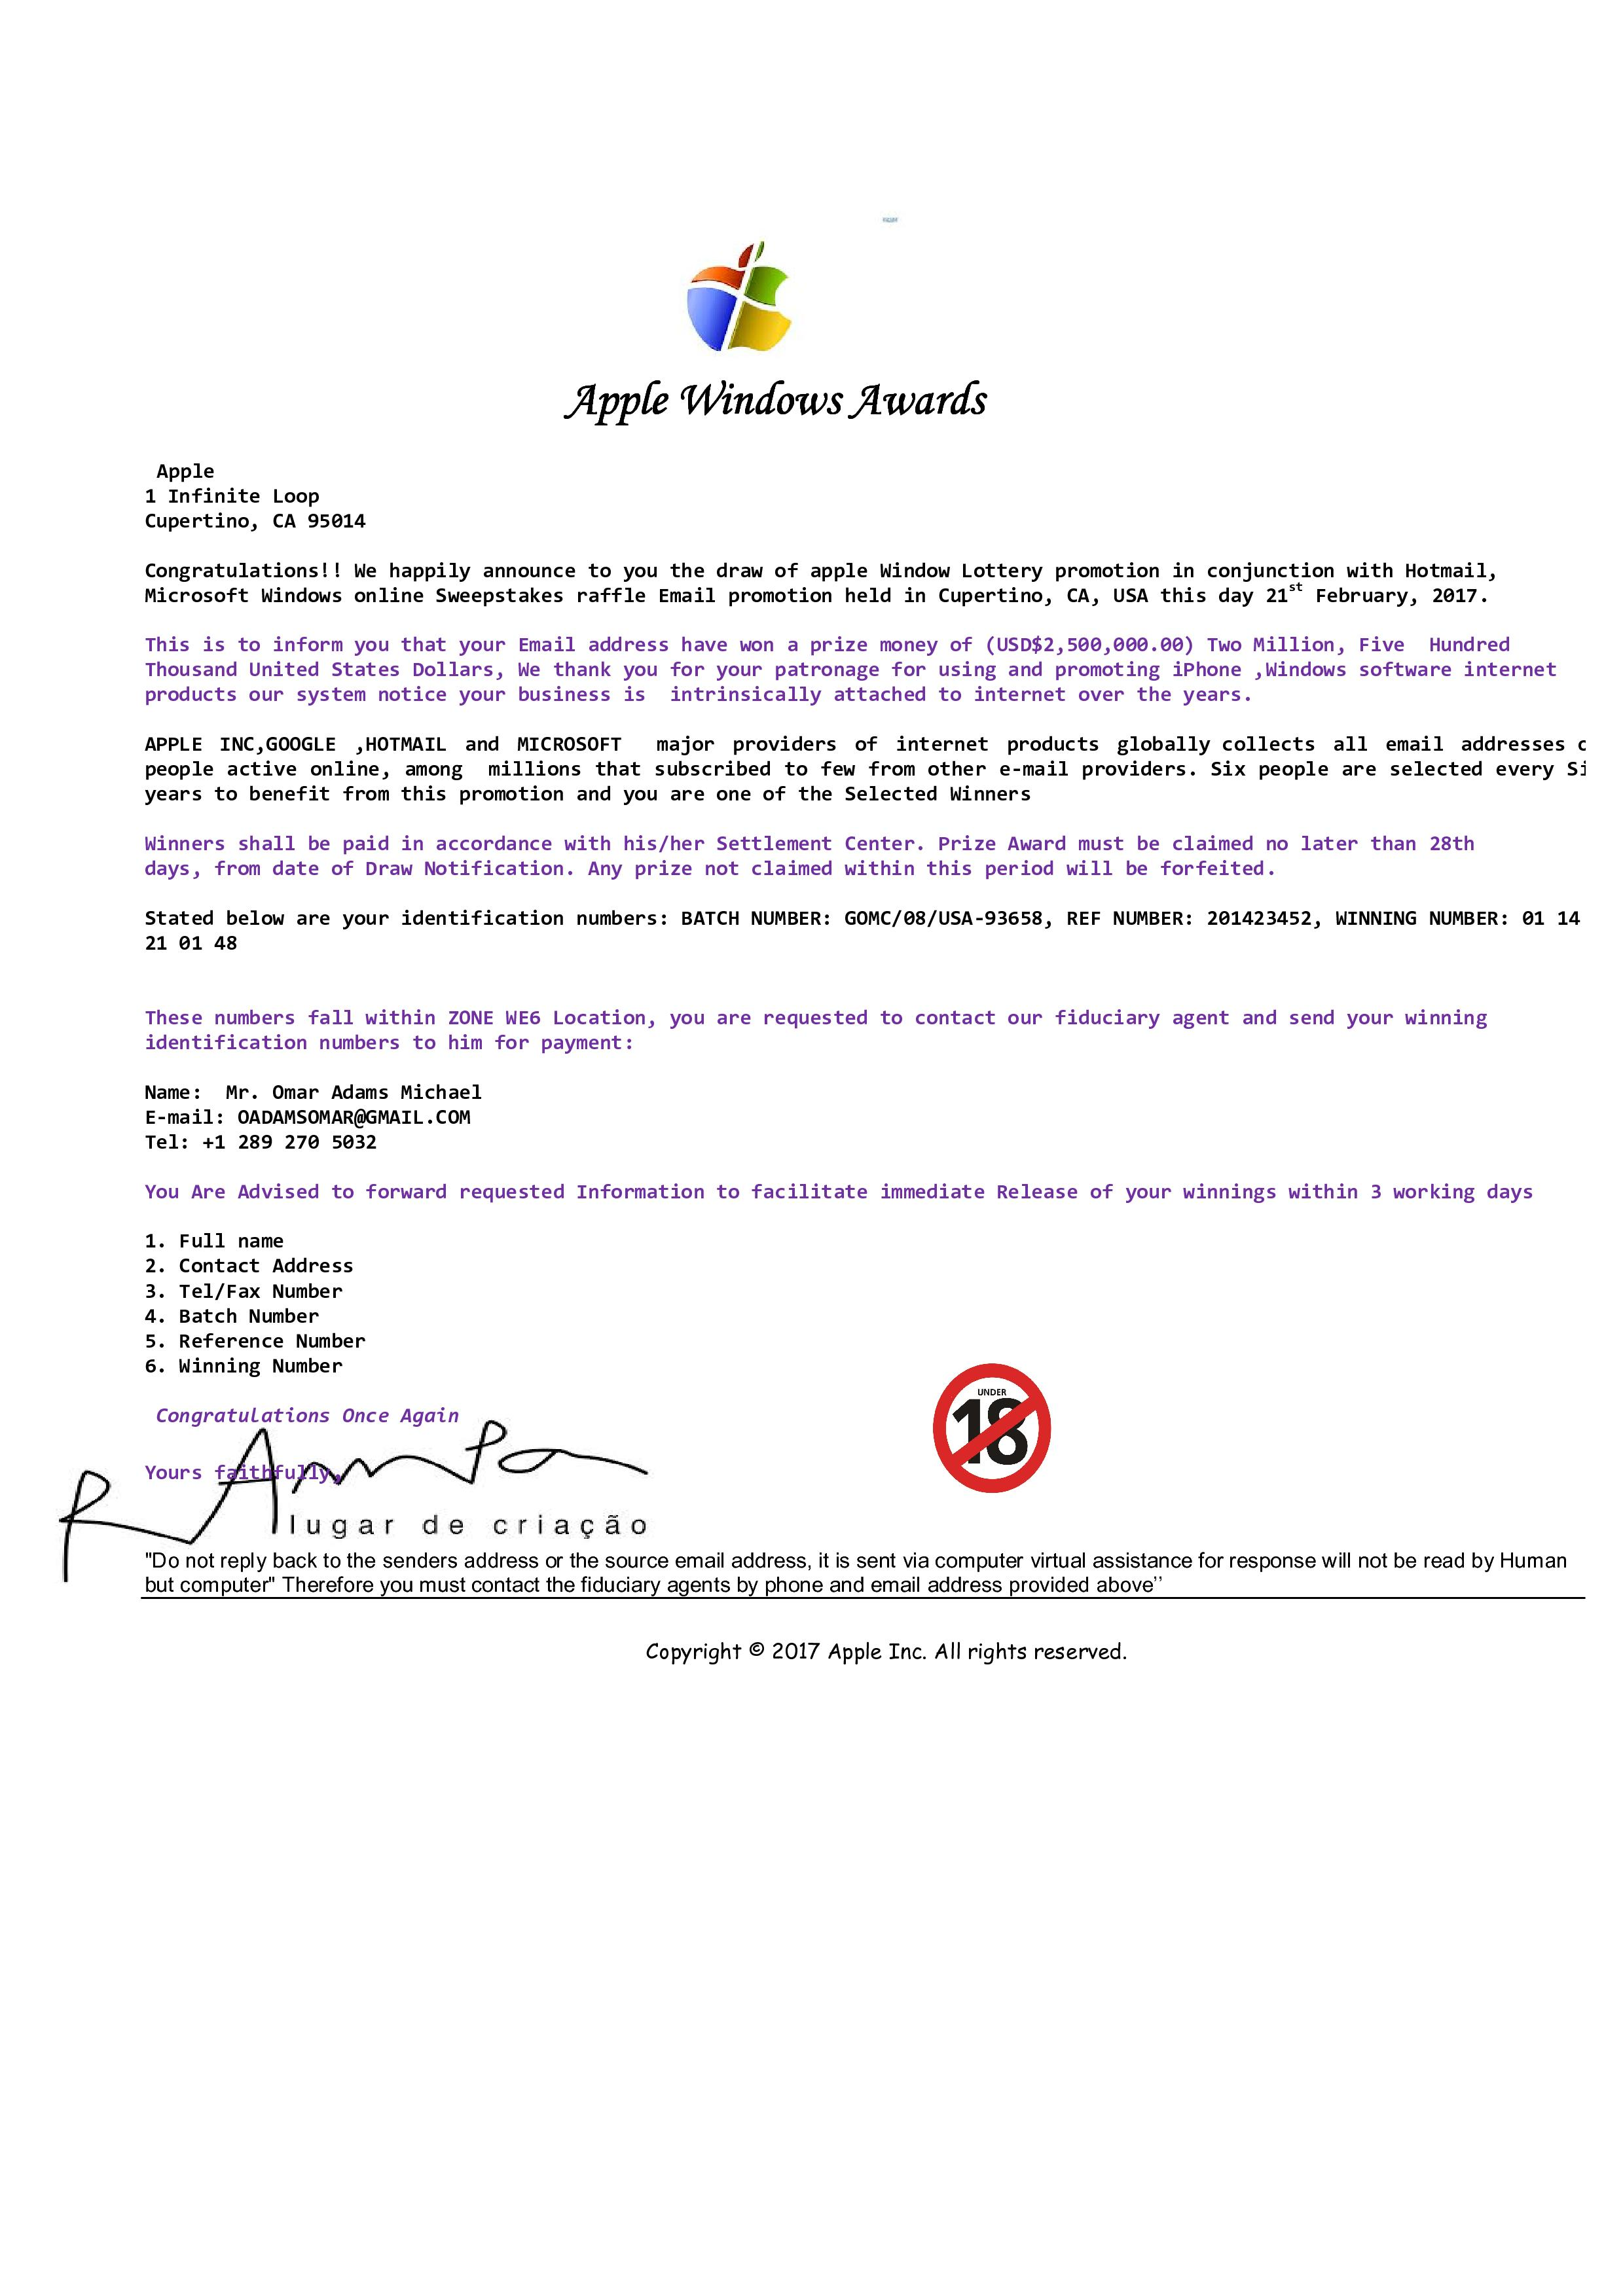 Scam Email: Copyright © 2017 Apple Inc  All rights reserved _0001